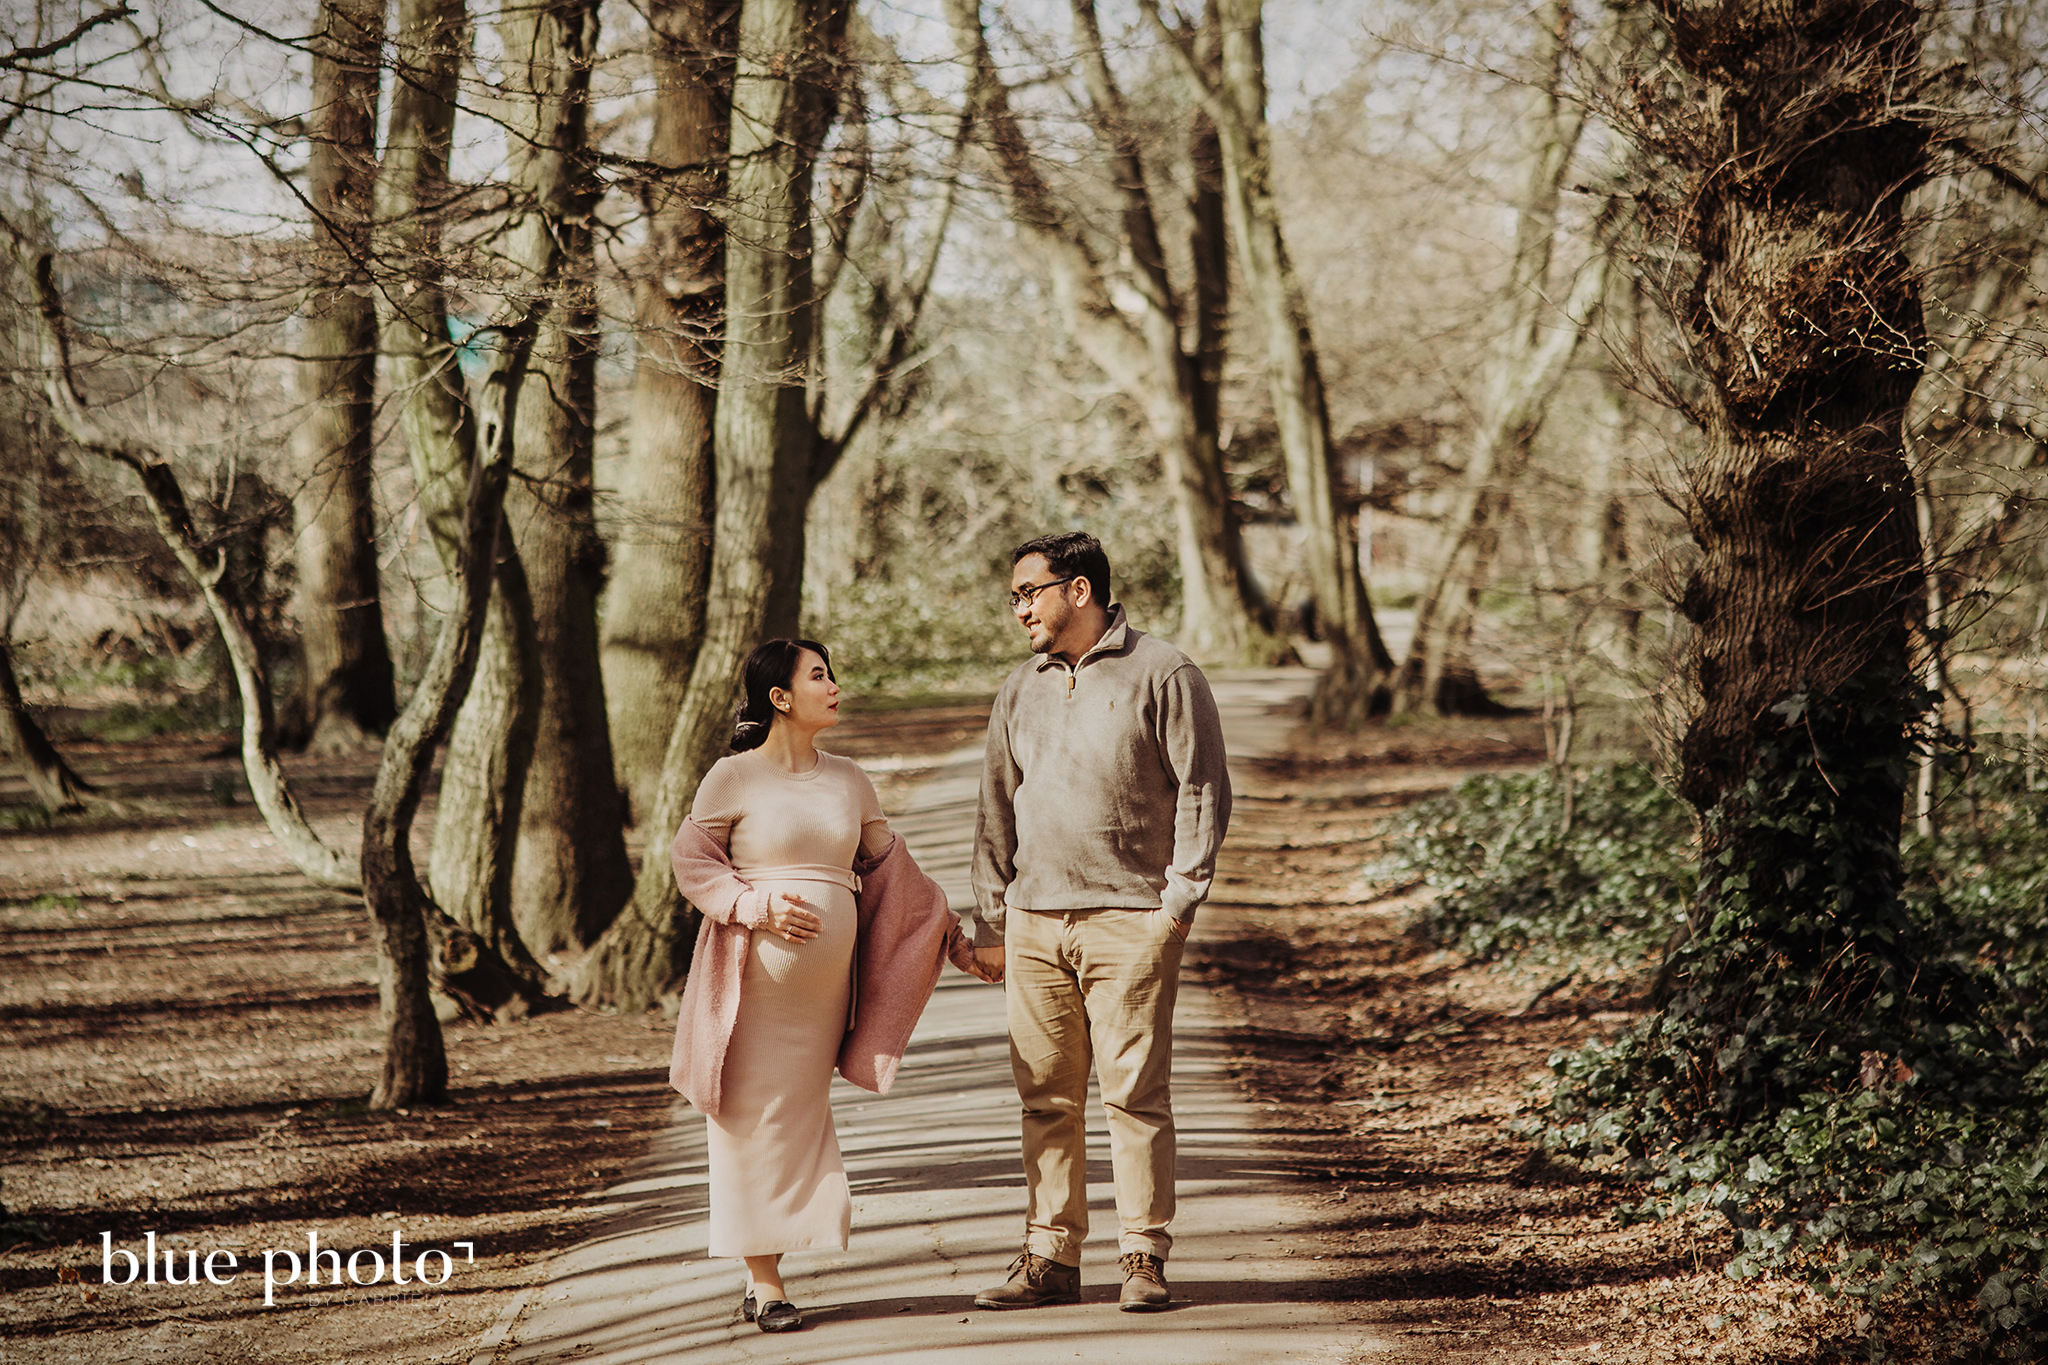 Difa and her maternity session in East Finchley, Cherry Tree Wood Park, North London